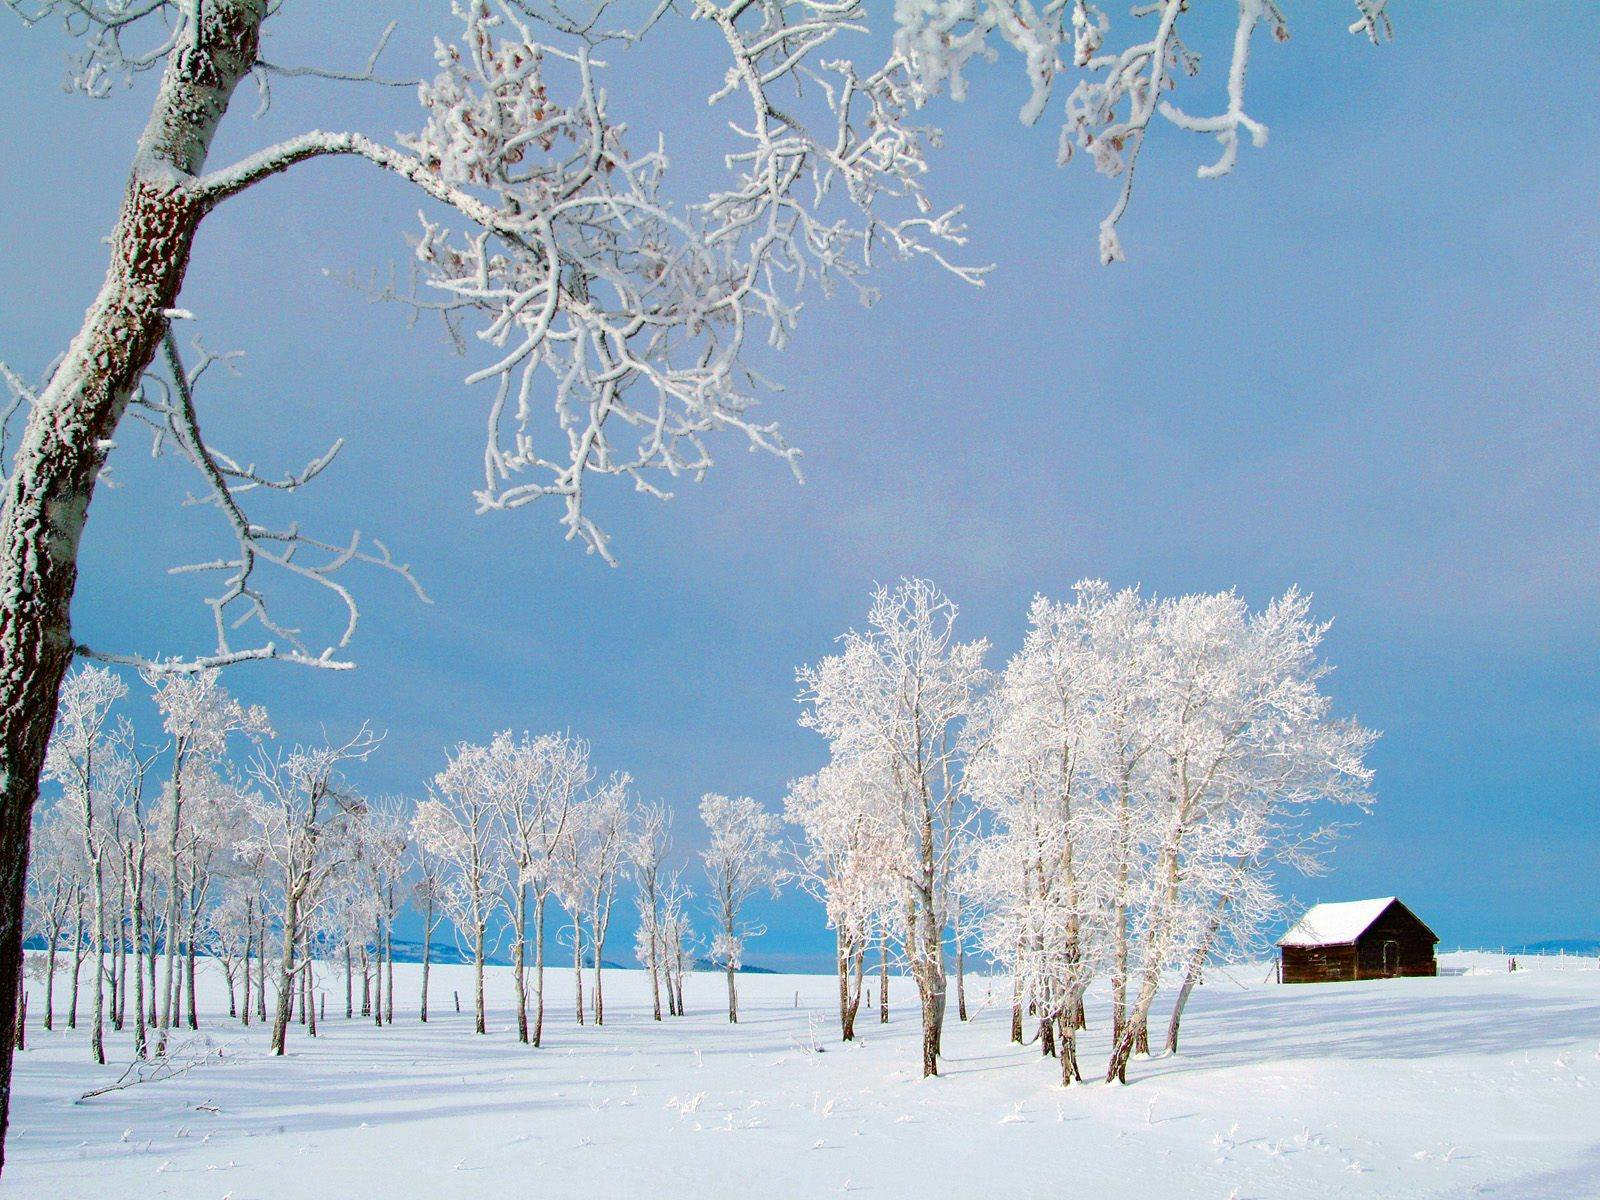 Winter Extra Woodsy Cabin Wallpapers For Desktop Backgrounds HD 1600x1200